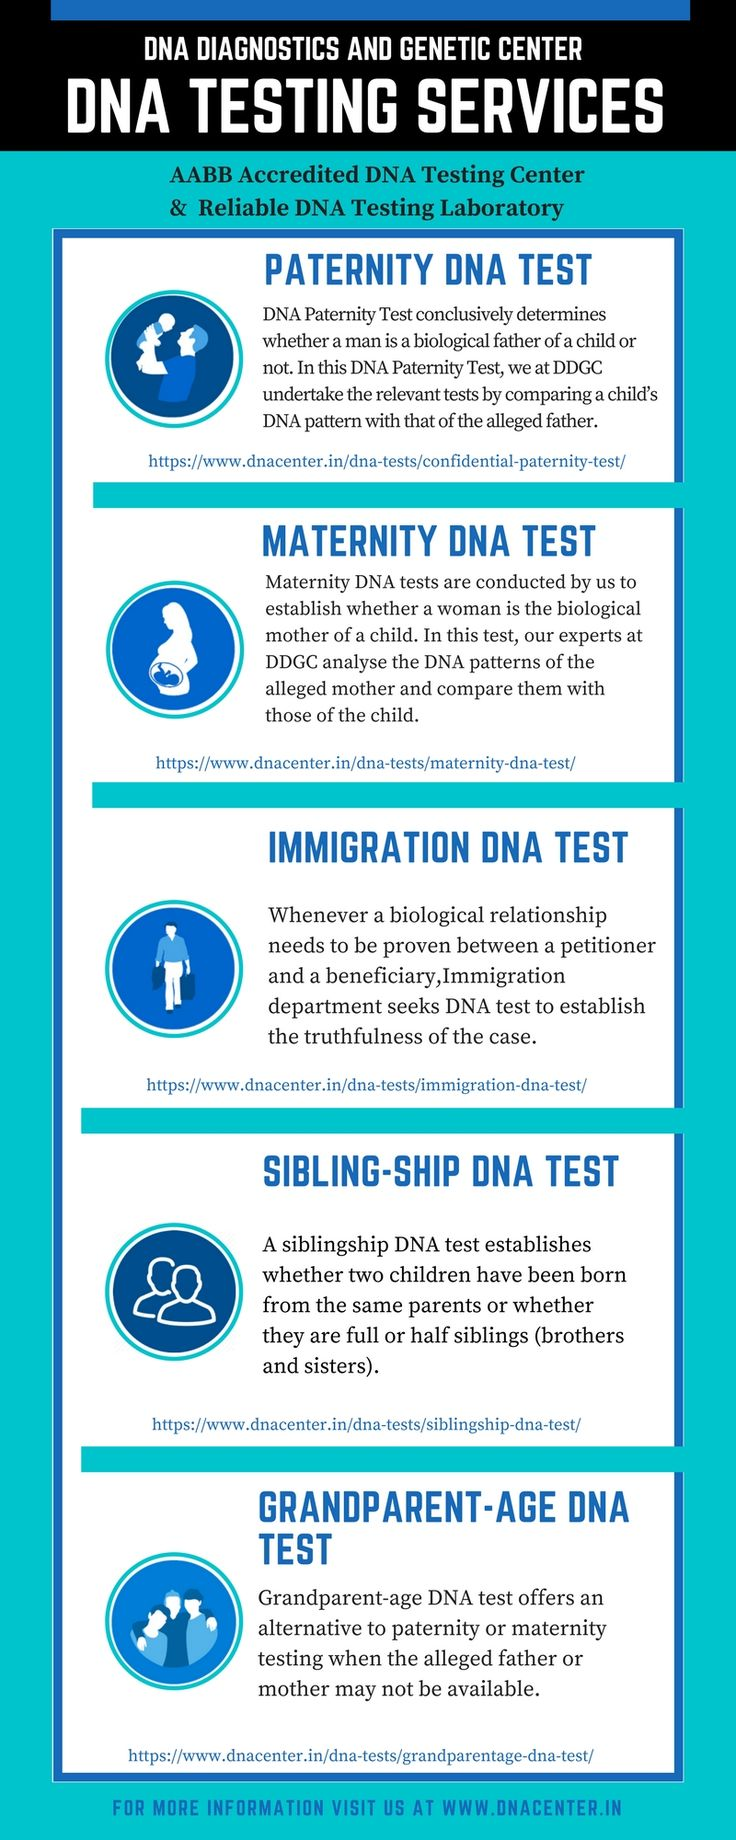 DNA Testing Services - DNA Diagnostics and Genetic Center